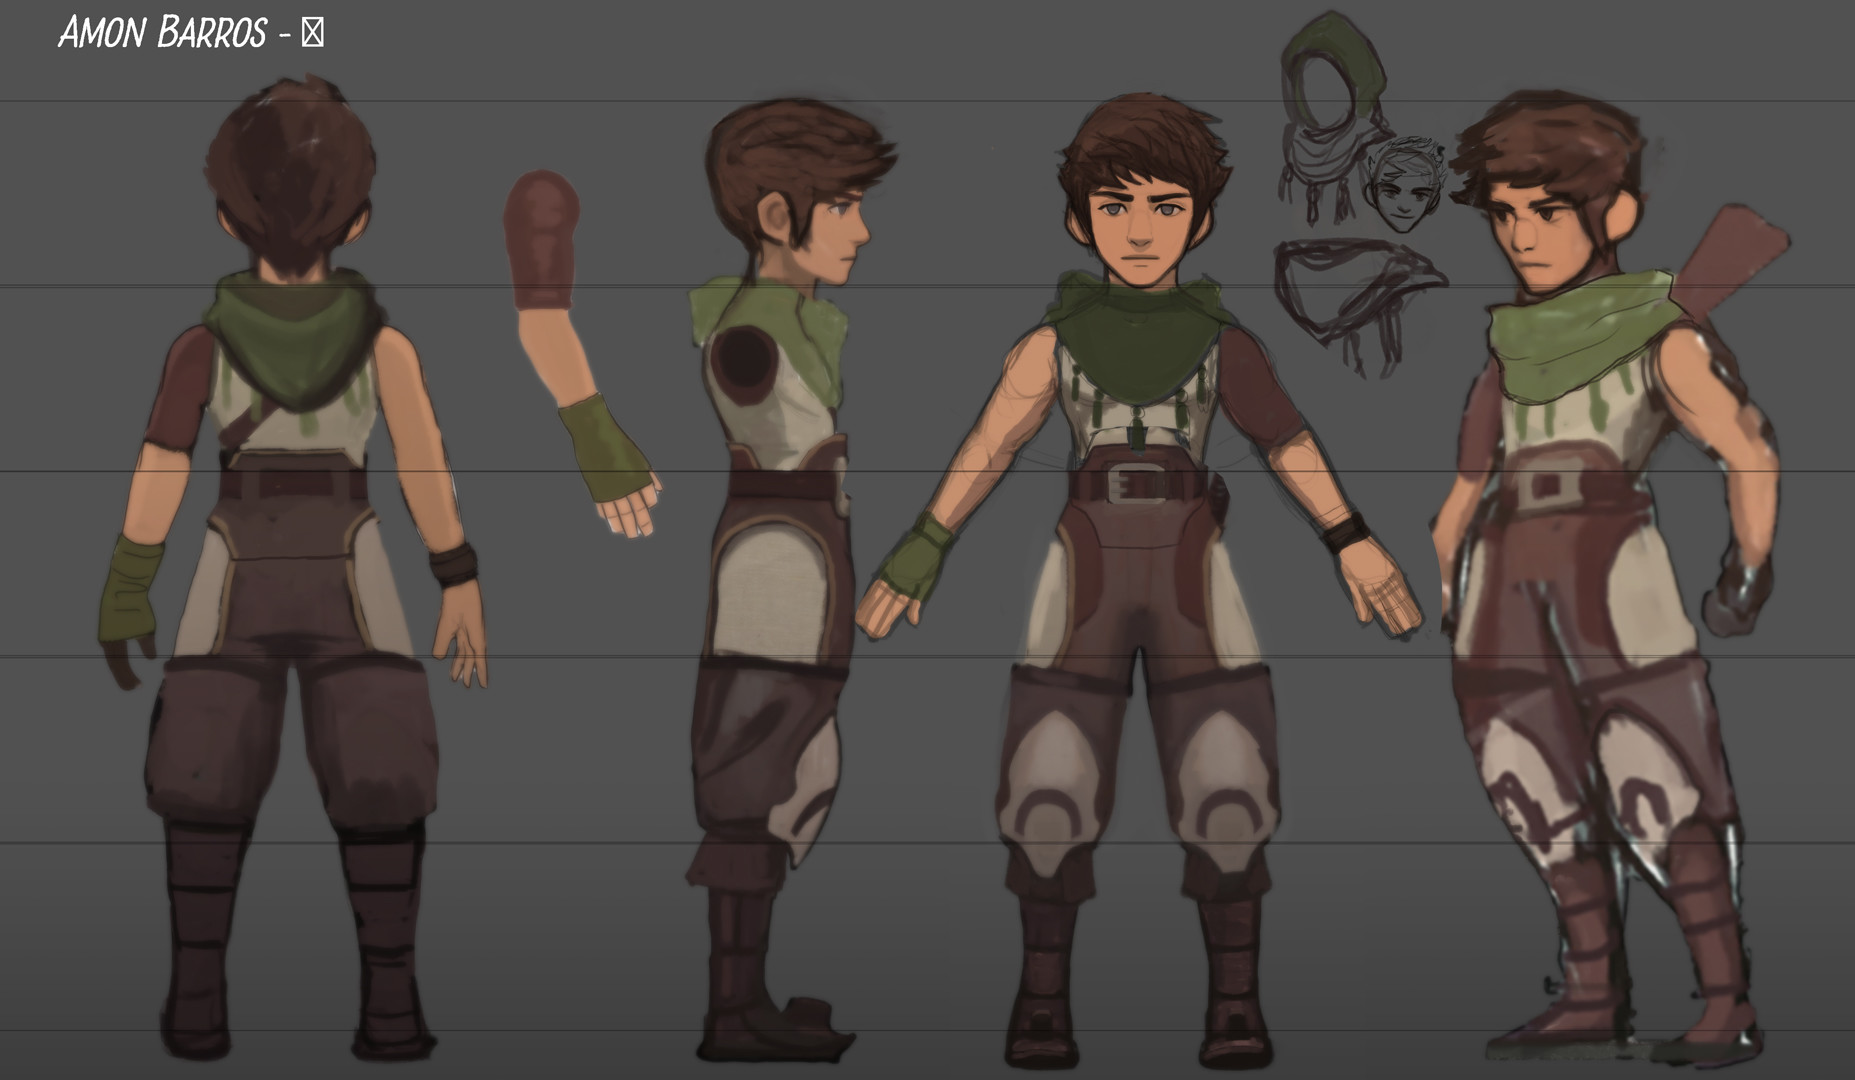 Character sheet for earlier version with more stylised proportions.